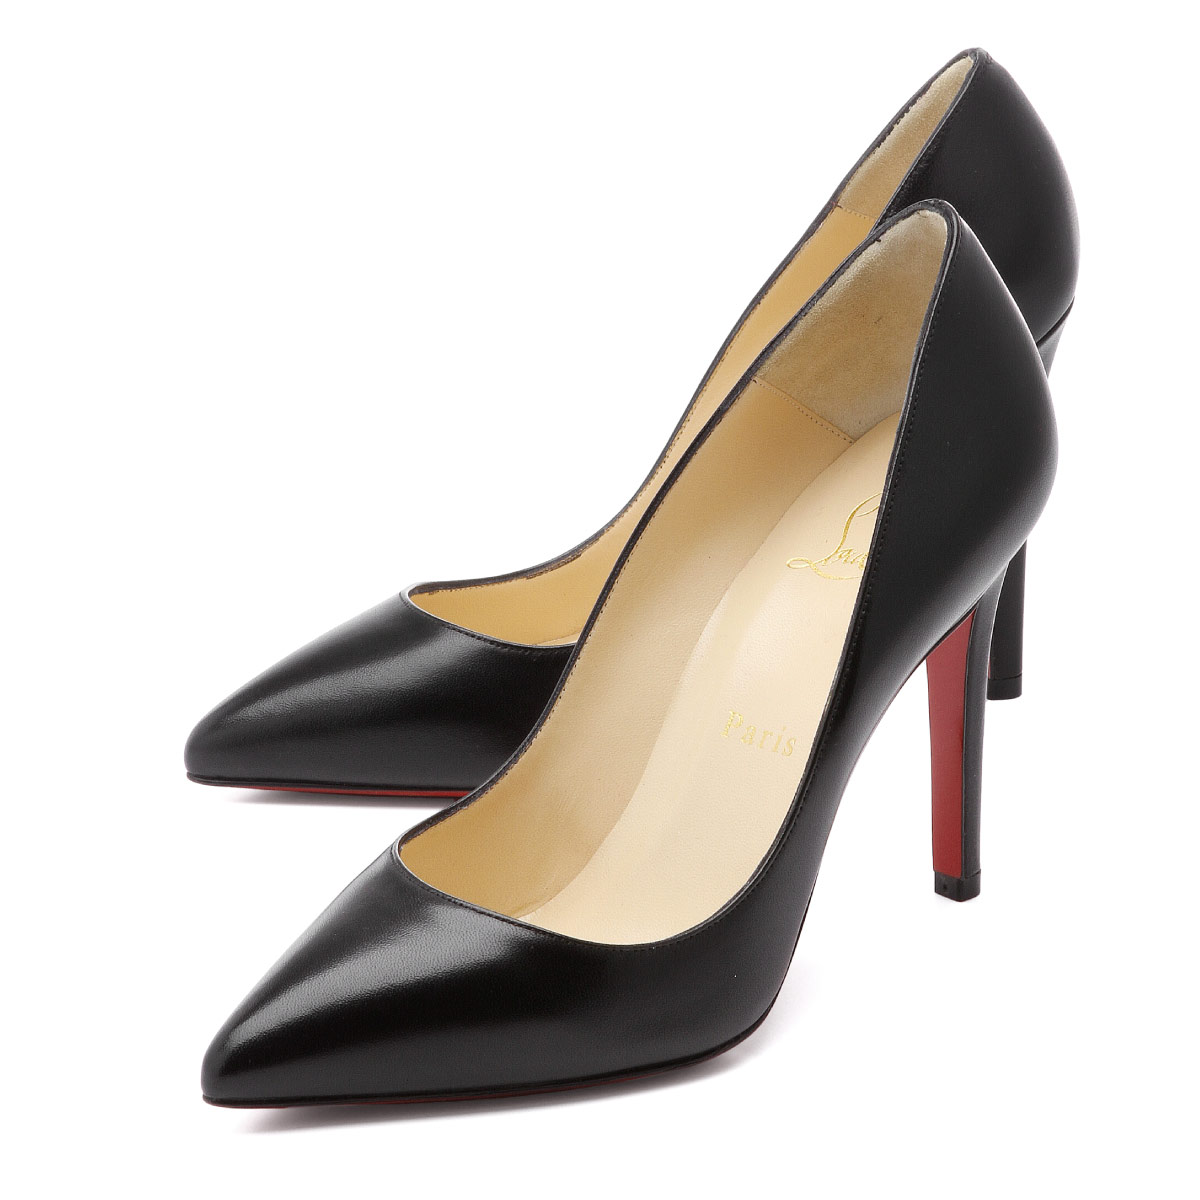 063154670f9 new zealand louboutin shoes pumps 0e581 71f2b